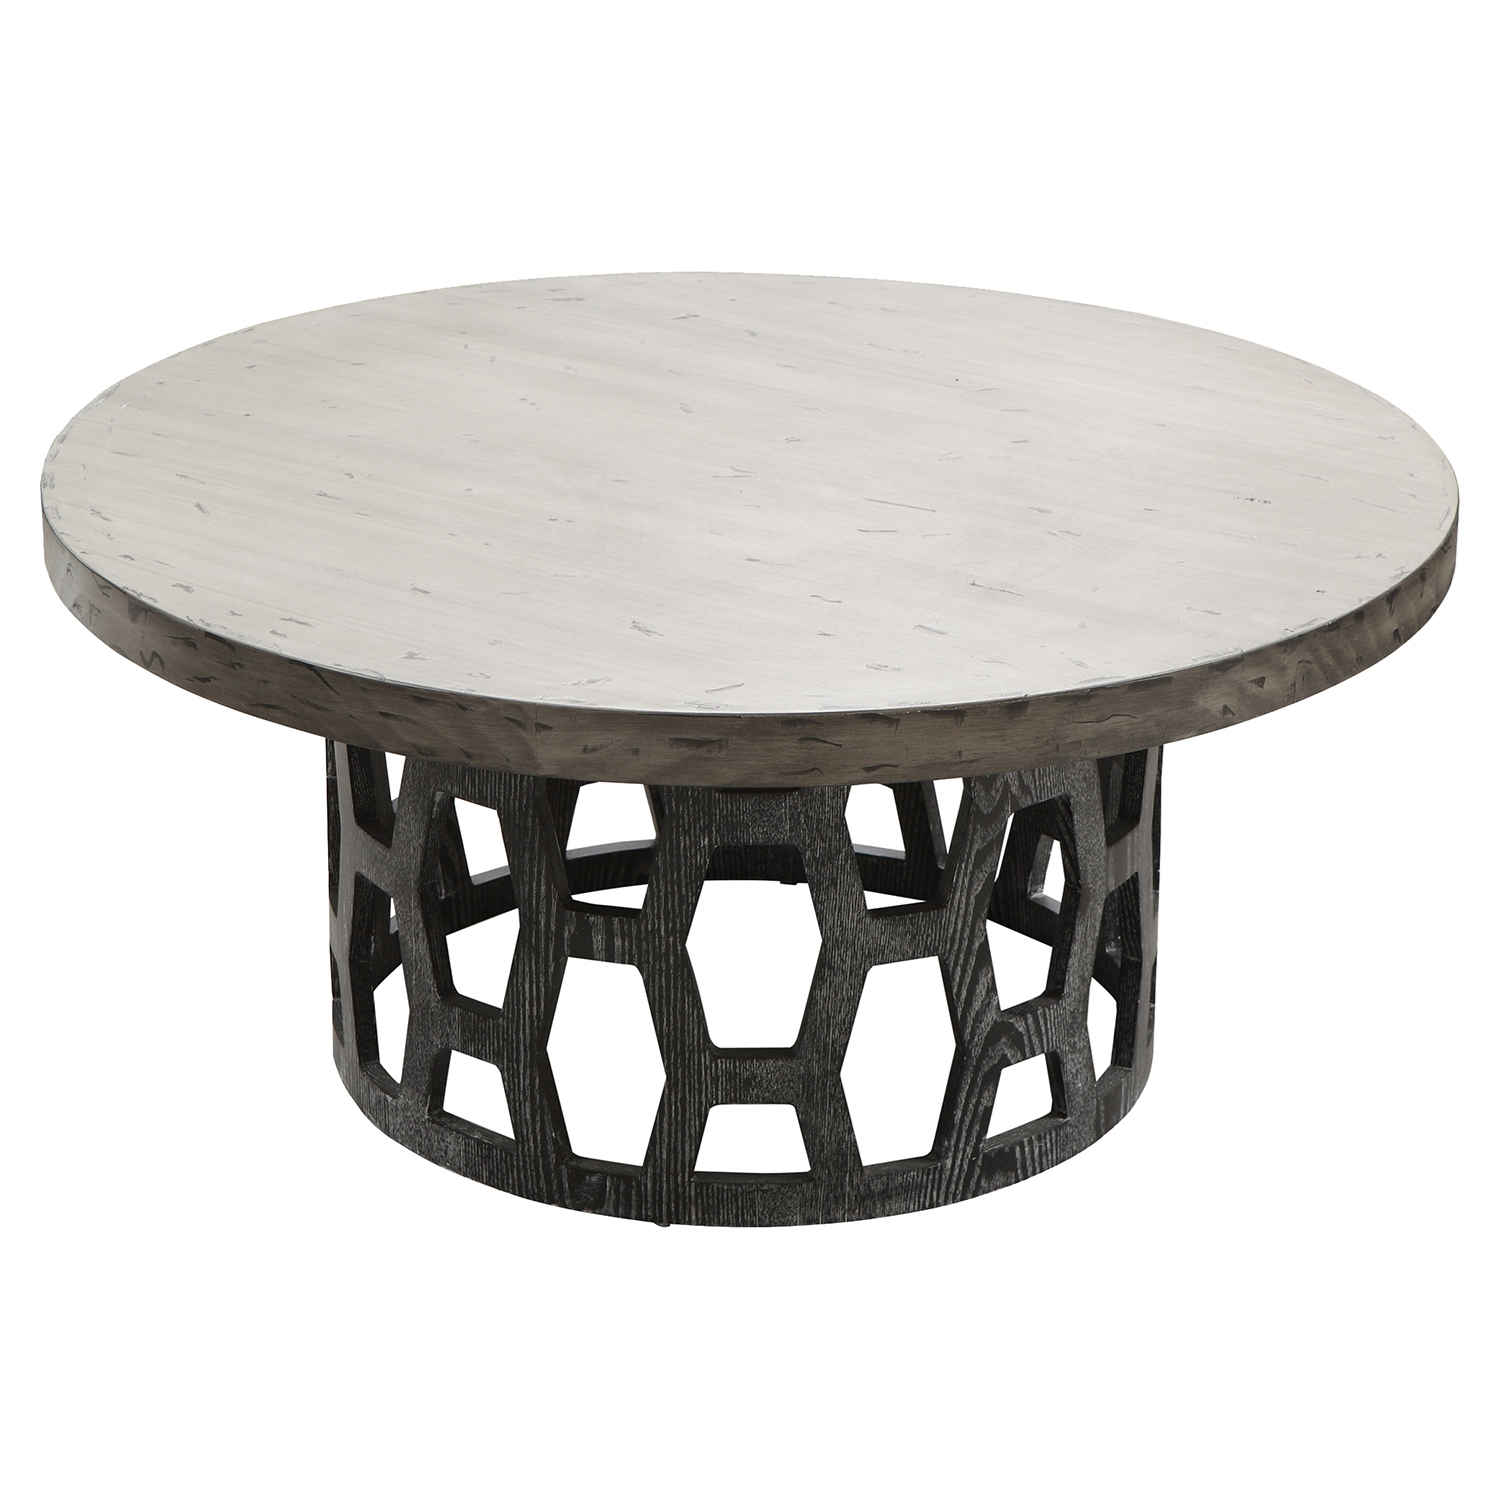 Centennial Round Coffee Table - AL-LCCNCOTO